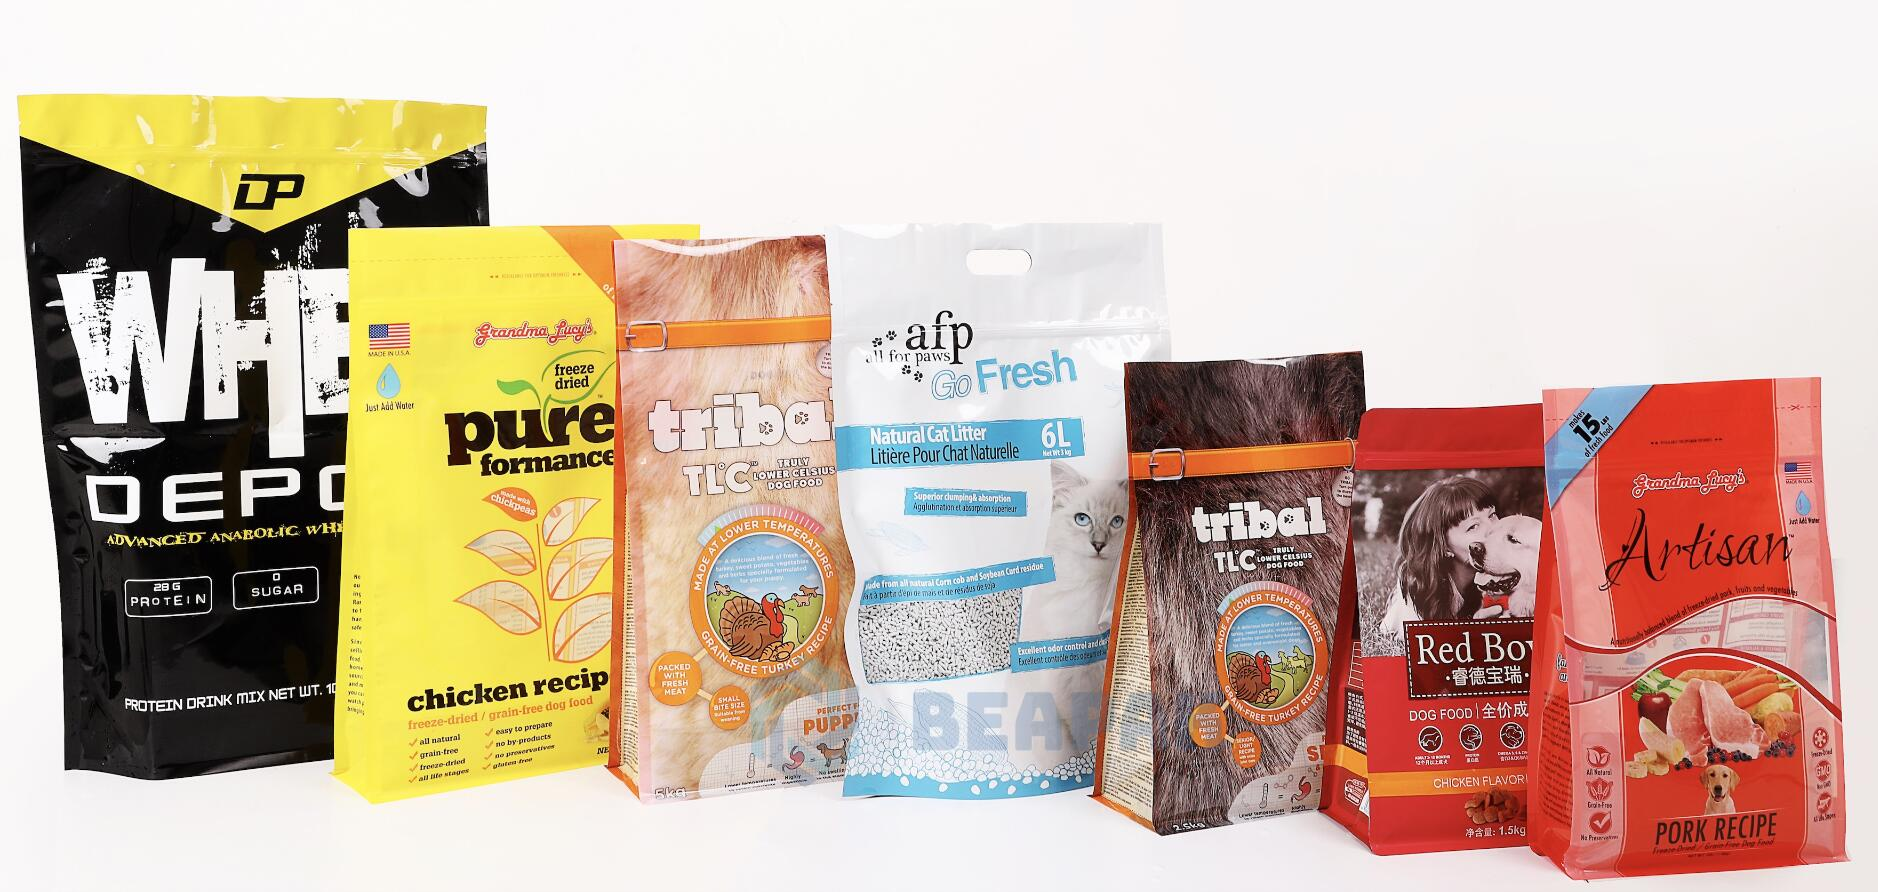 Shanghai Beian Packaging Co,.Ltd Presents a Variety of Flexible and Widely Used Packaging Materials in Almost All packaging Industry